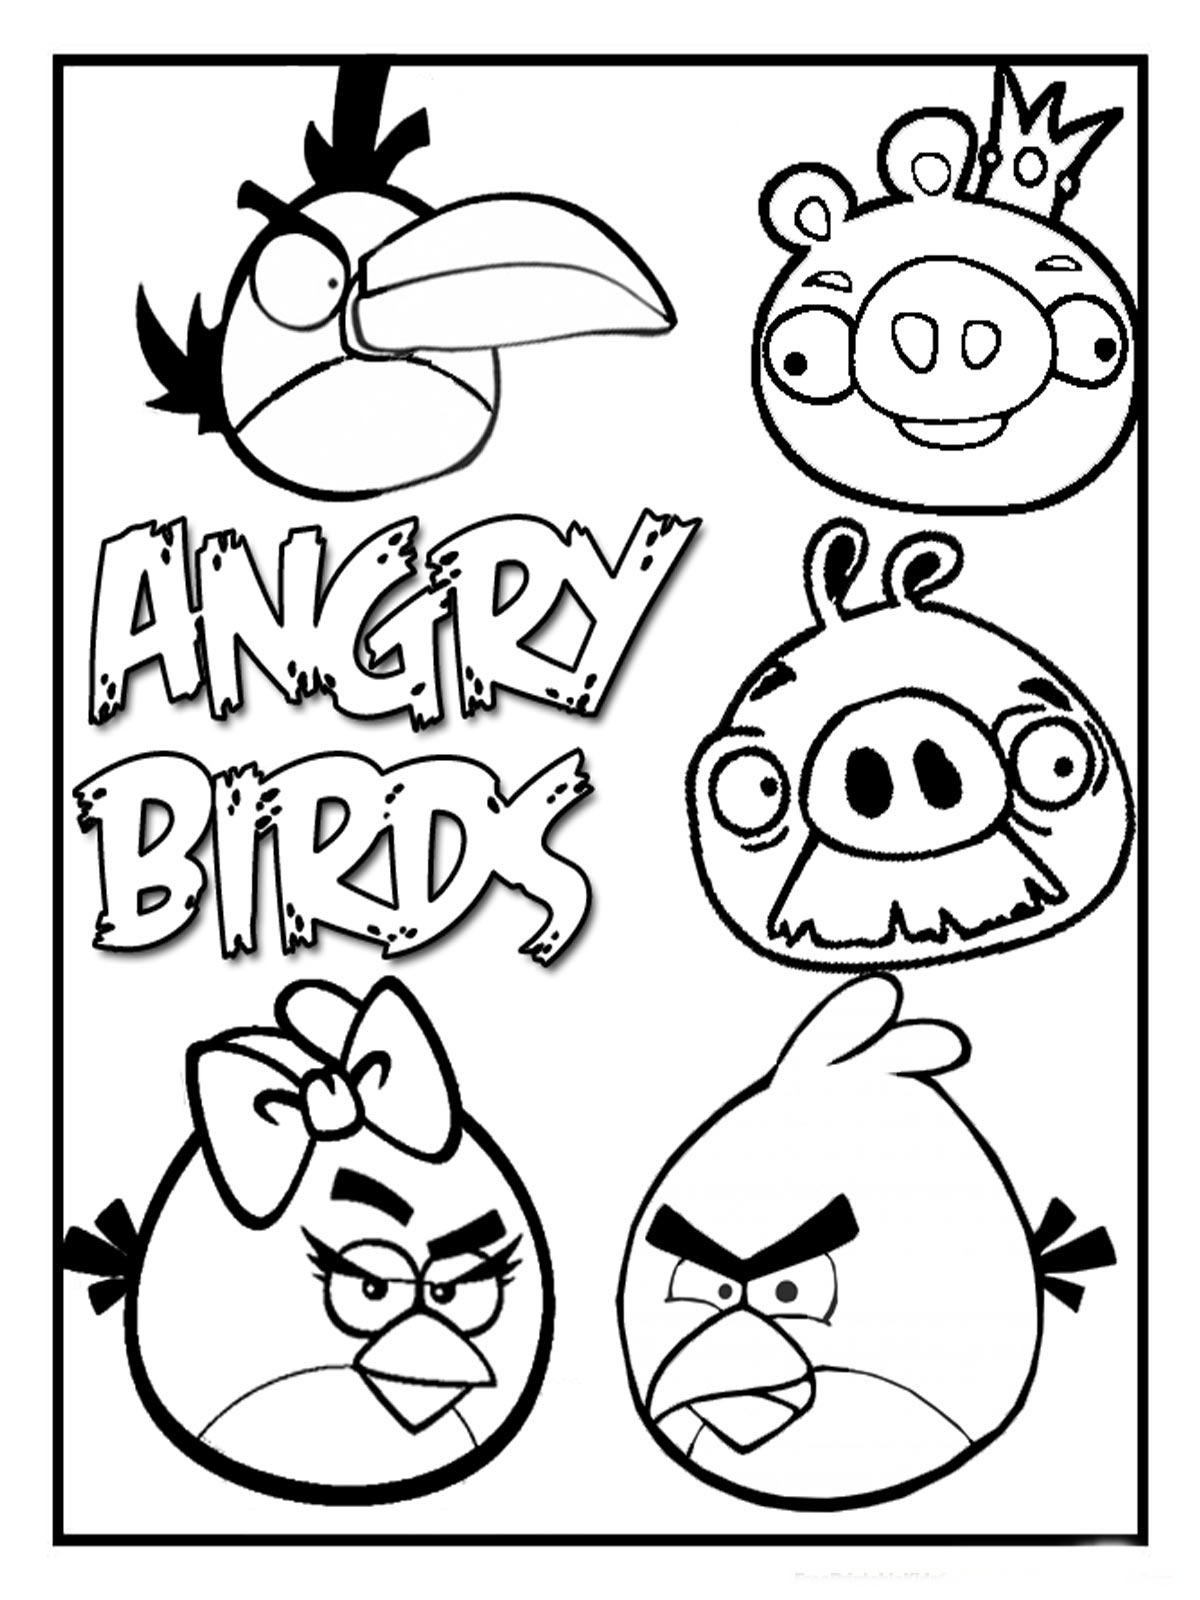 angry birds coloring pages free printable angry bird coloring pages for kids pages angry birds coloring